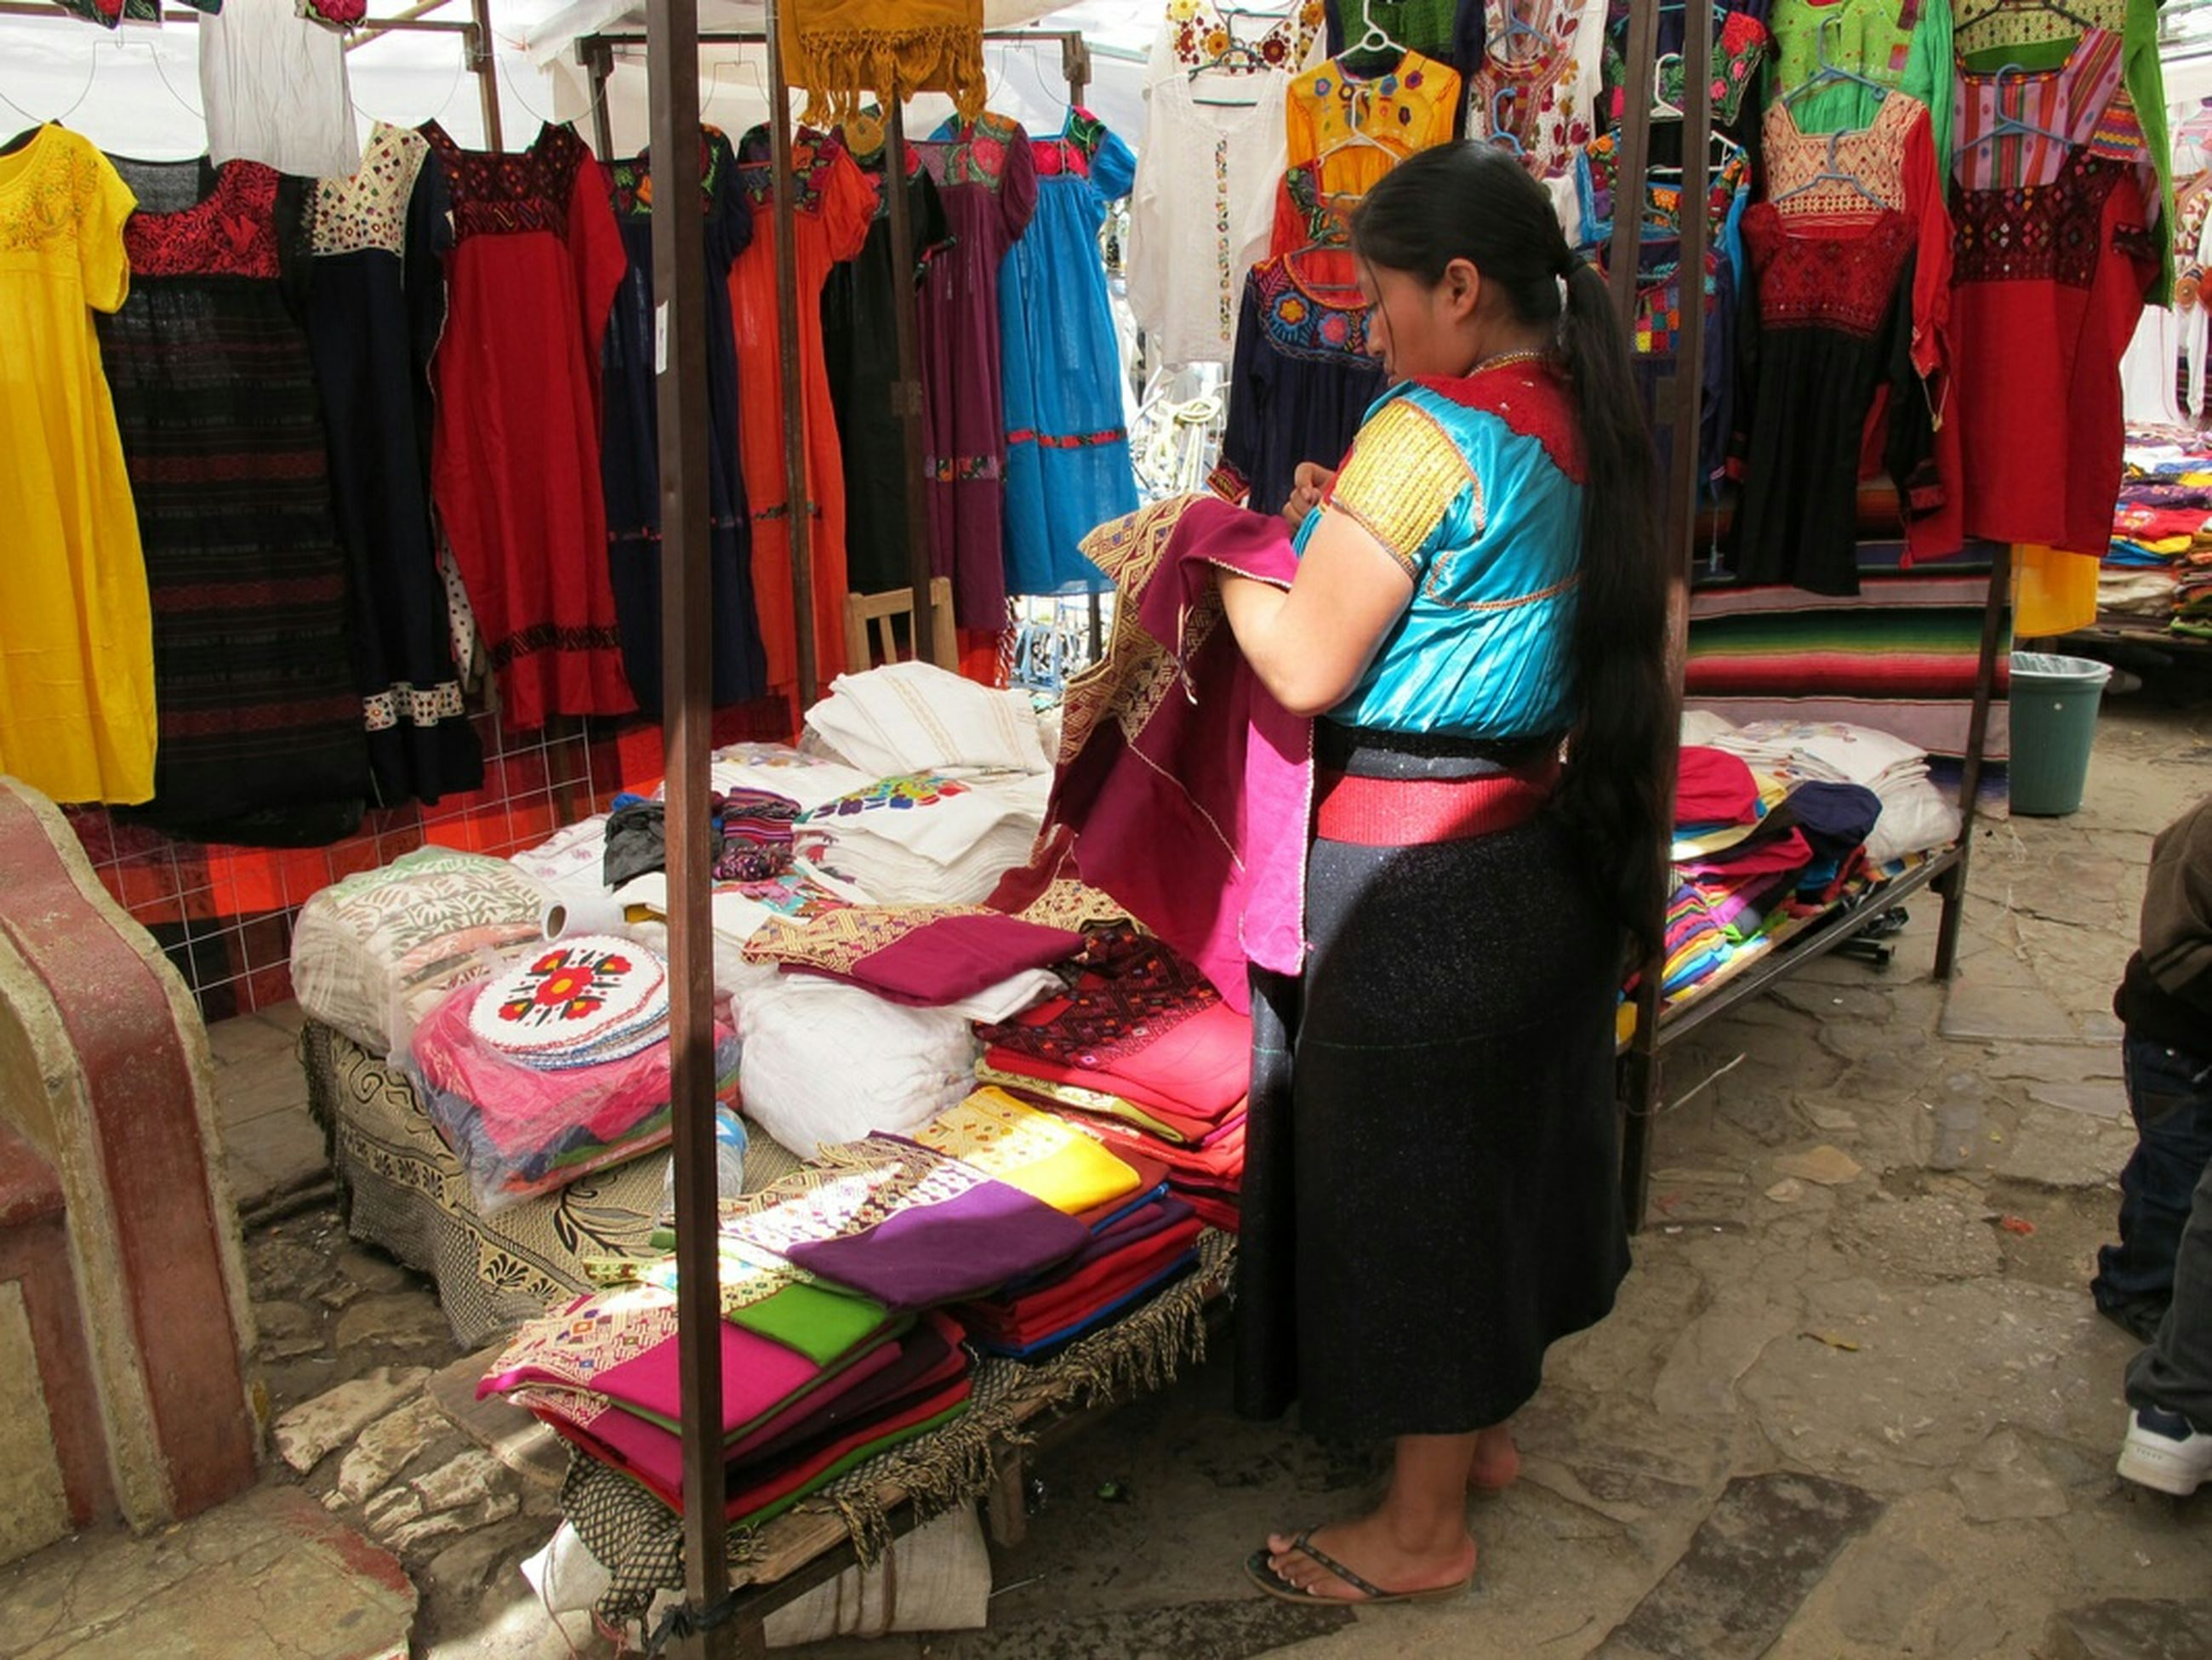 retail, lifestyles, person, multi colored, built structure, men, market stall, market, building exterior, architecture, for sale, clothing, store, standing, casual clothing, variation, traditional clothing, cultures